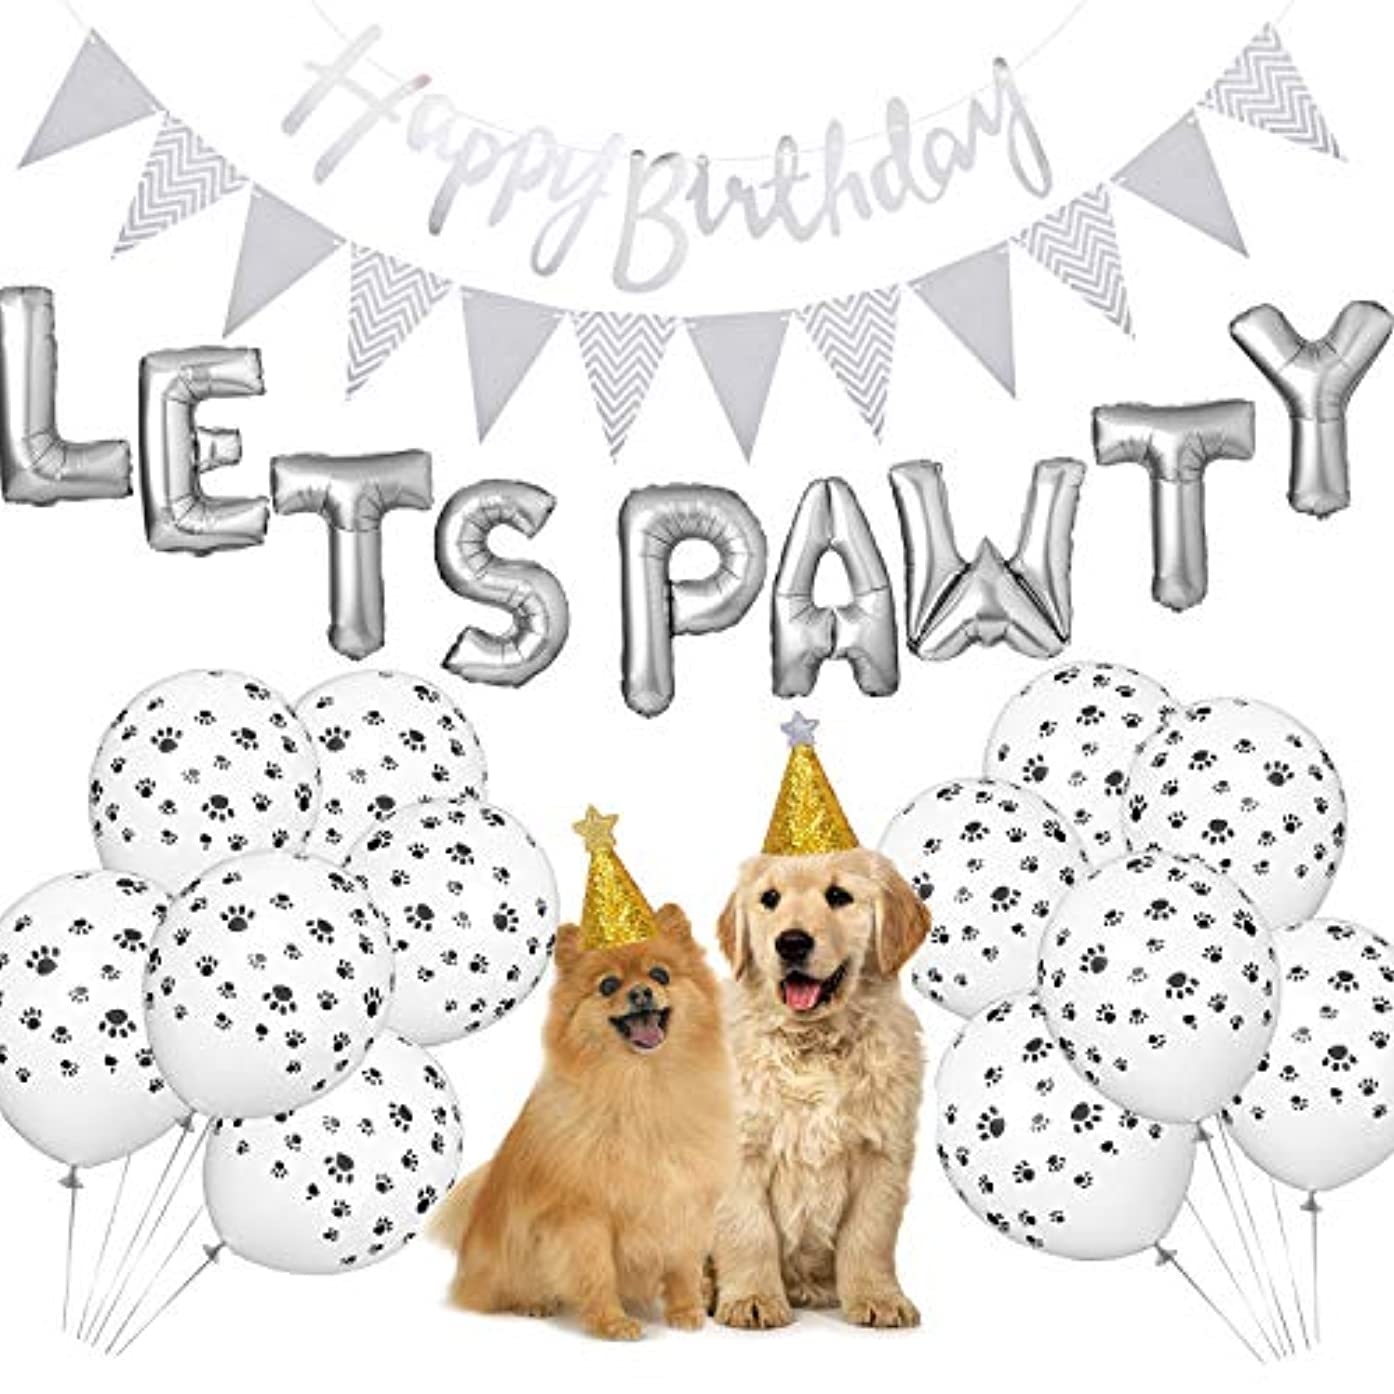 Dog Birthday Party Supplies, Lets Pawty Balloons Banner,Paw Print Balloons, Pet Birthday Hat Happy Birthday Banner Foil Balloons